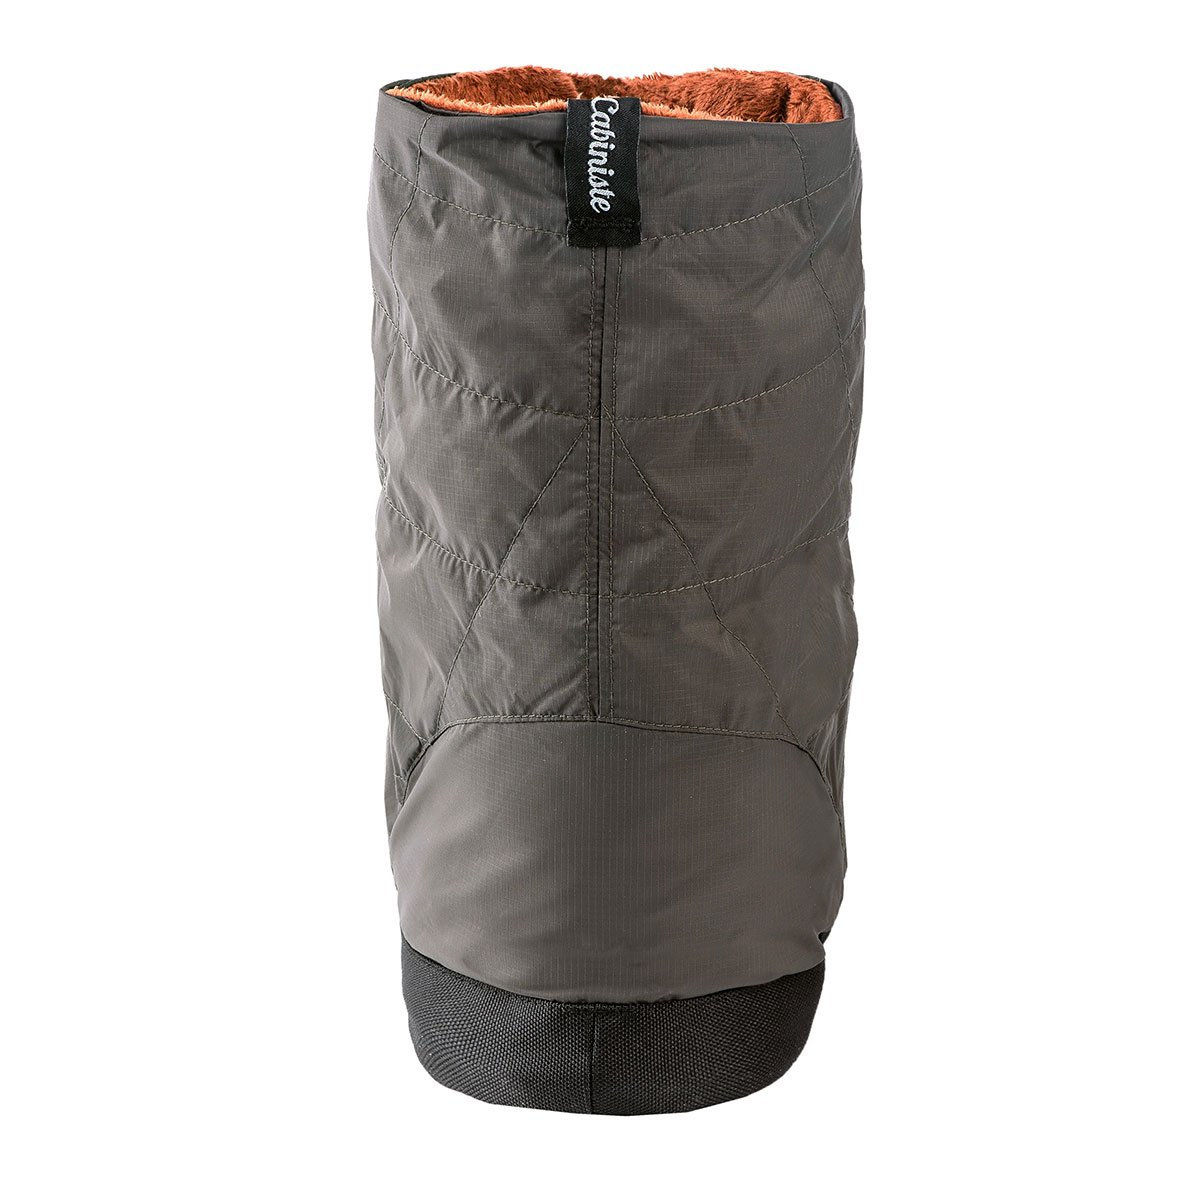 Cabiniste Men's Down Insulated Bootie (Medium, Pewter/Copper) by Cabiniste (Image #3)